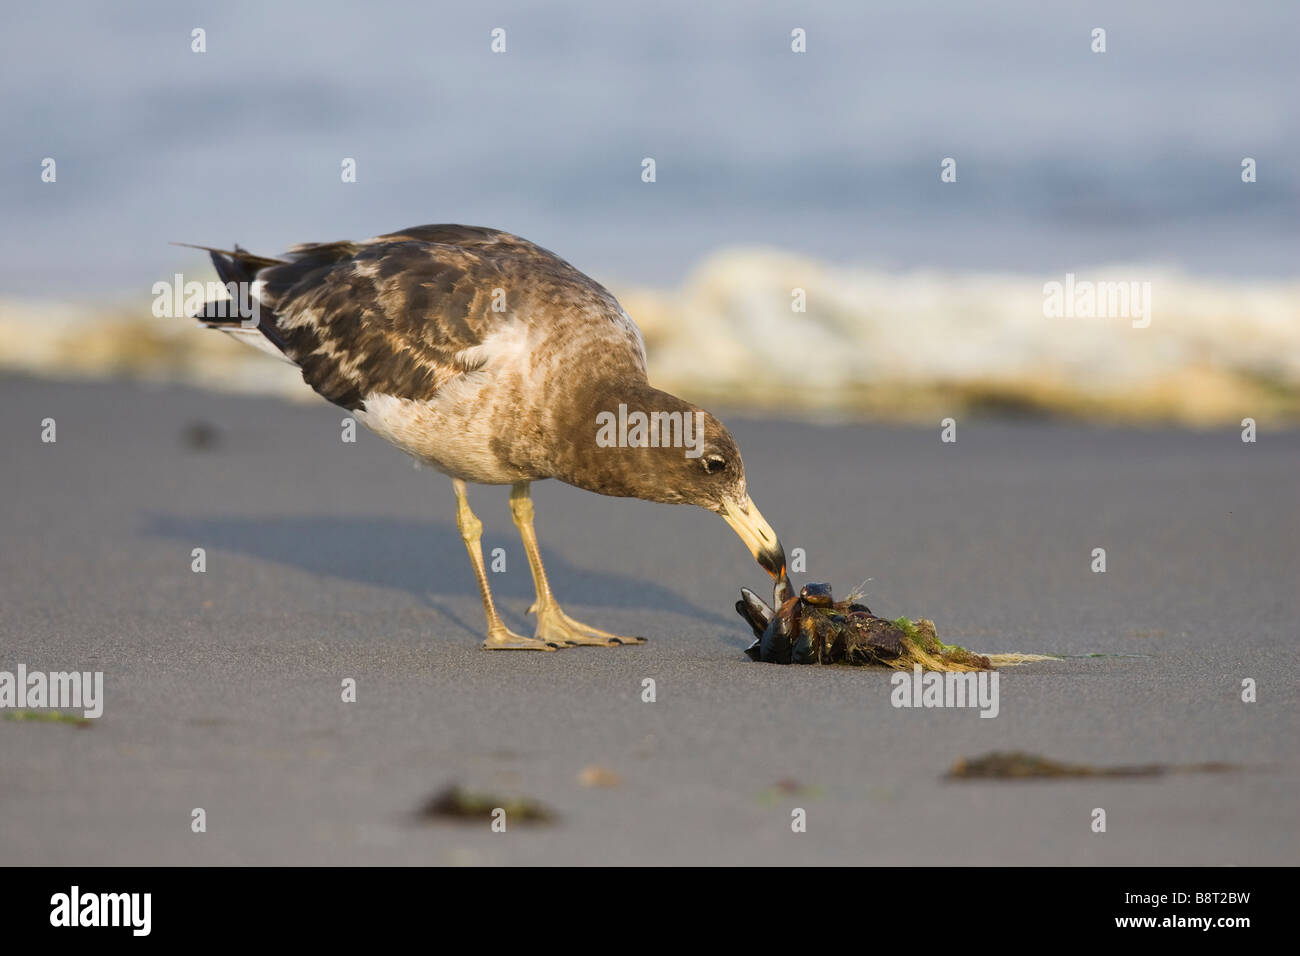 1st winter Band-tailed Gull (Larus belcheri) on a beach feeding on mussels - Stock Image